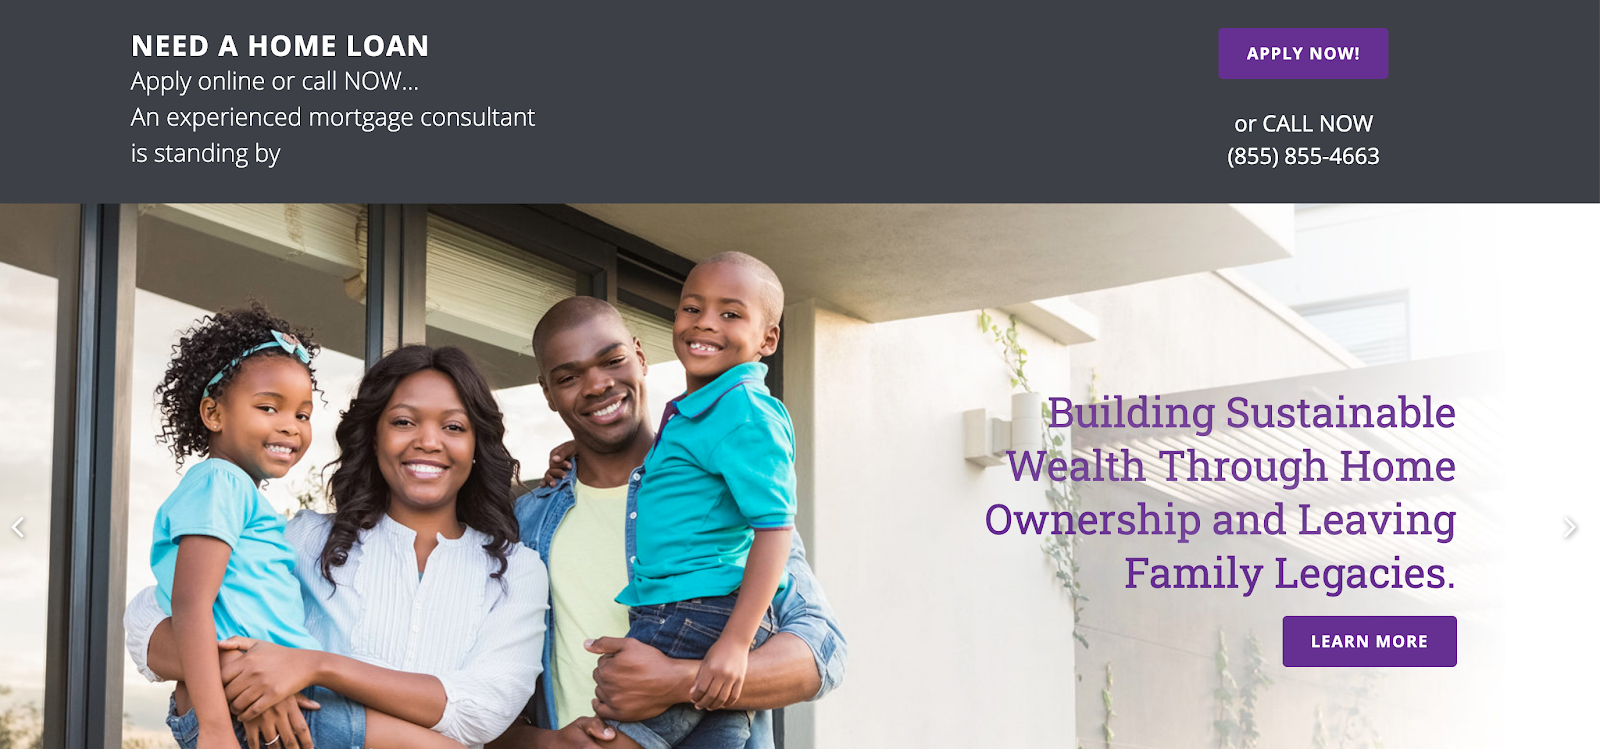 Legacy home loans website homepage featuring a family who received lending information in a sales consultation